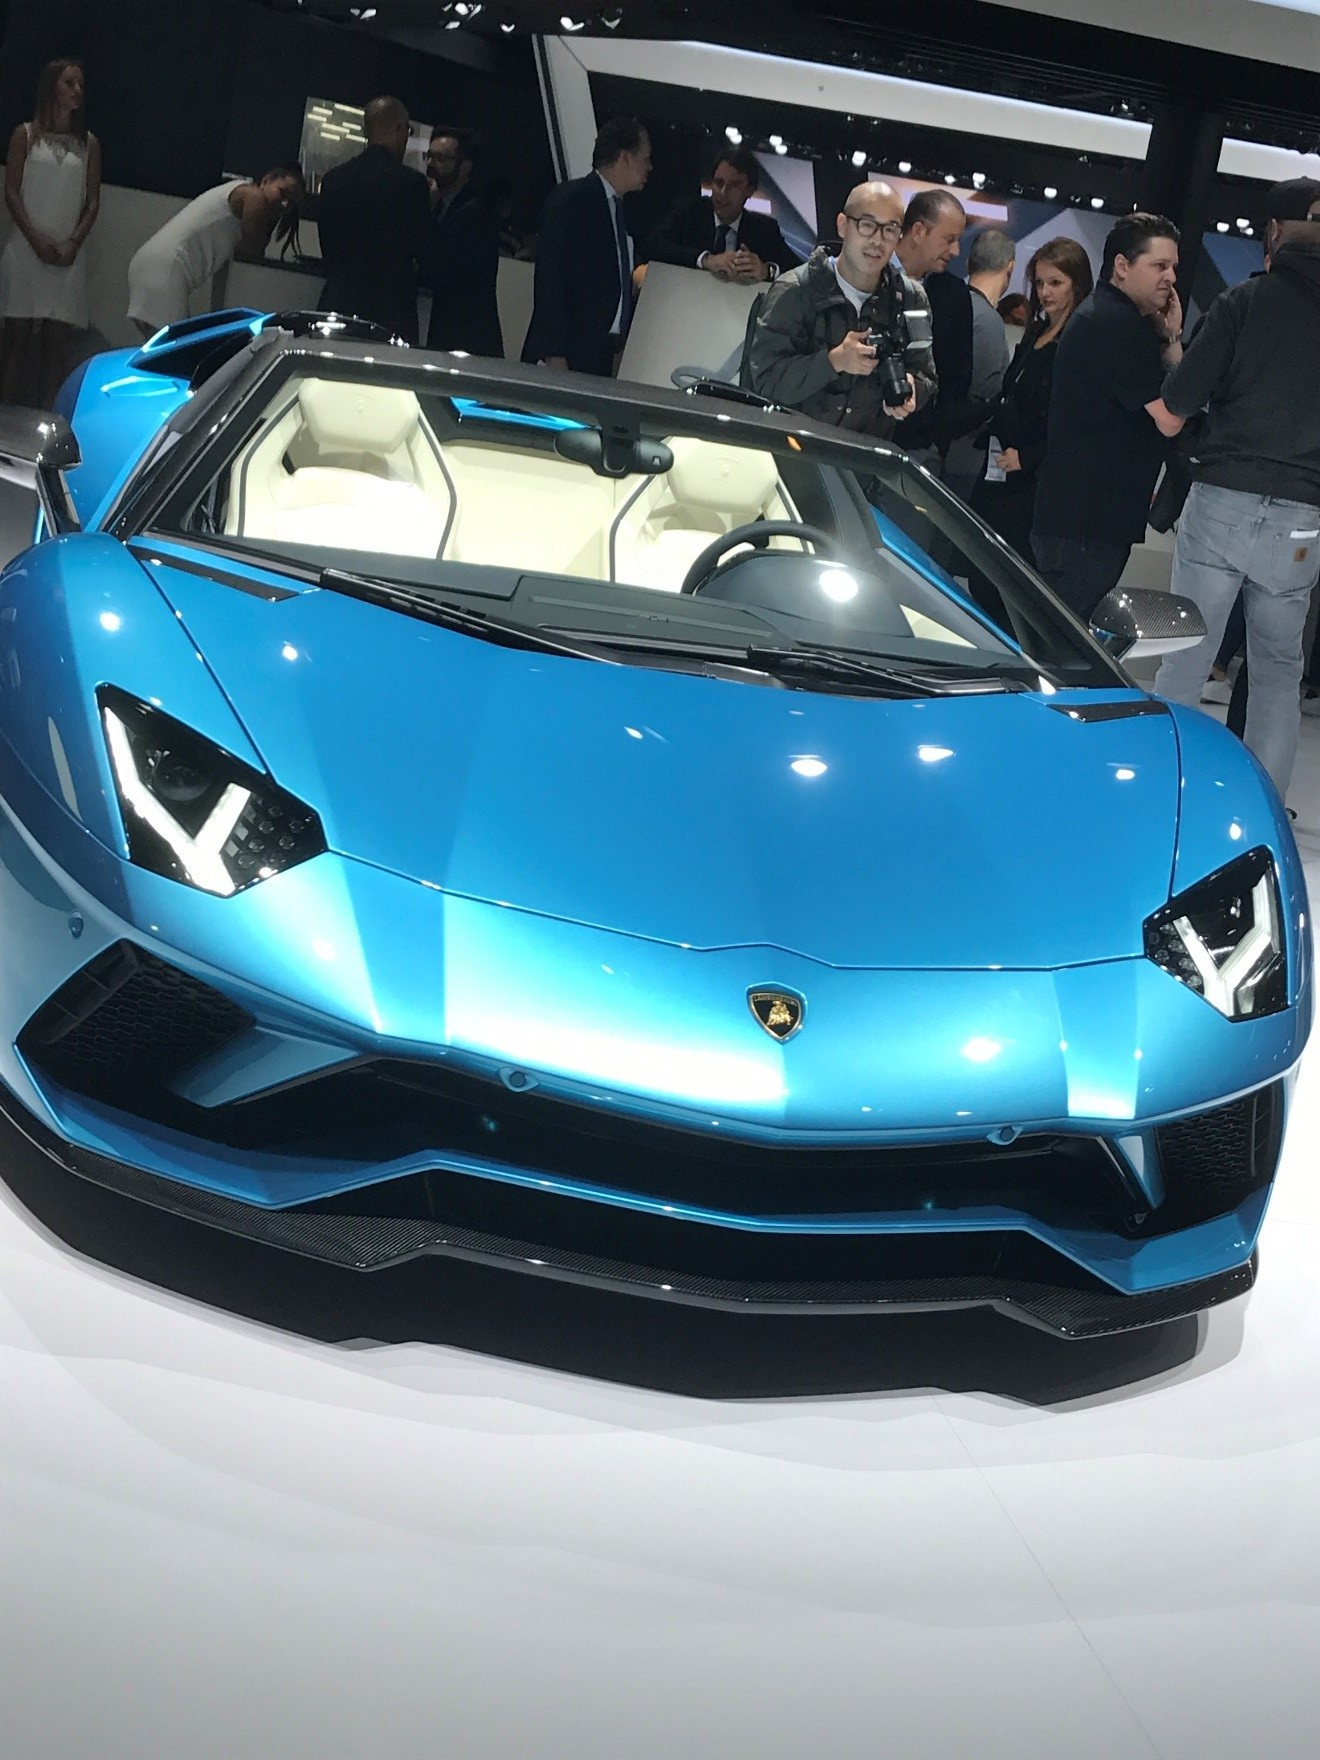 The Lamborghini Aventador S Roadster made its public debut at the 2017 Frankfurt show. In continental Europe the sportscar will be priced at EUR 313,666 and around $460,000 in the USA. Deliveries are scheduled to begin in February 2018.